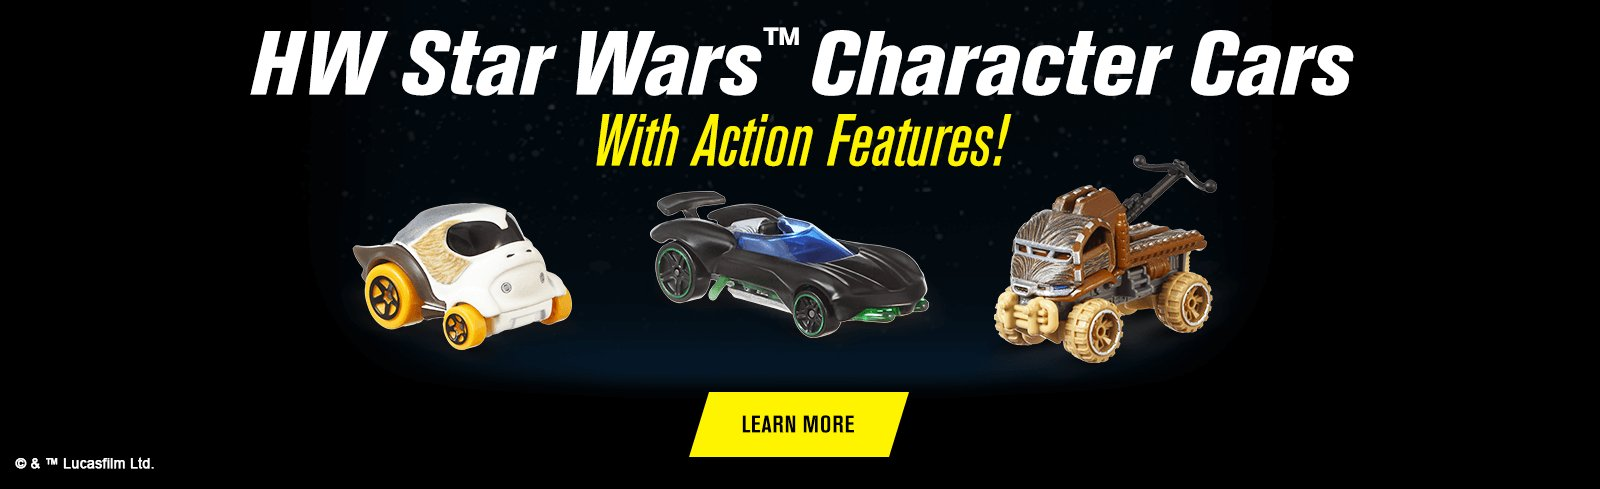 HW Star Wars™ Character Cars With Action Features!